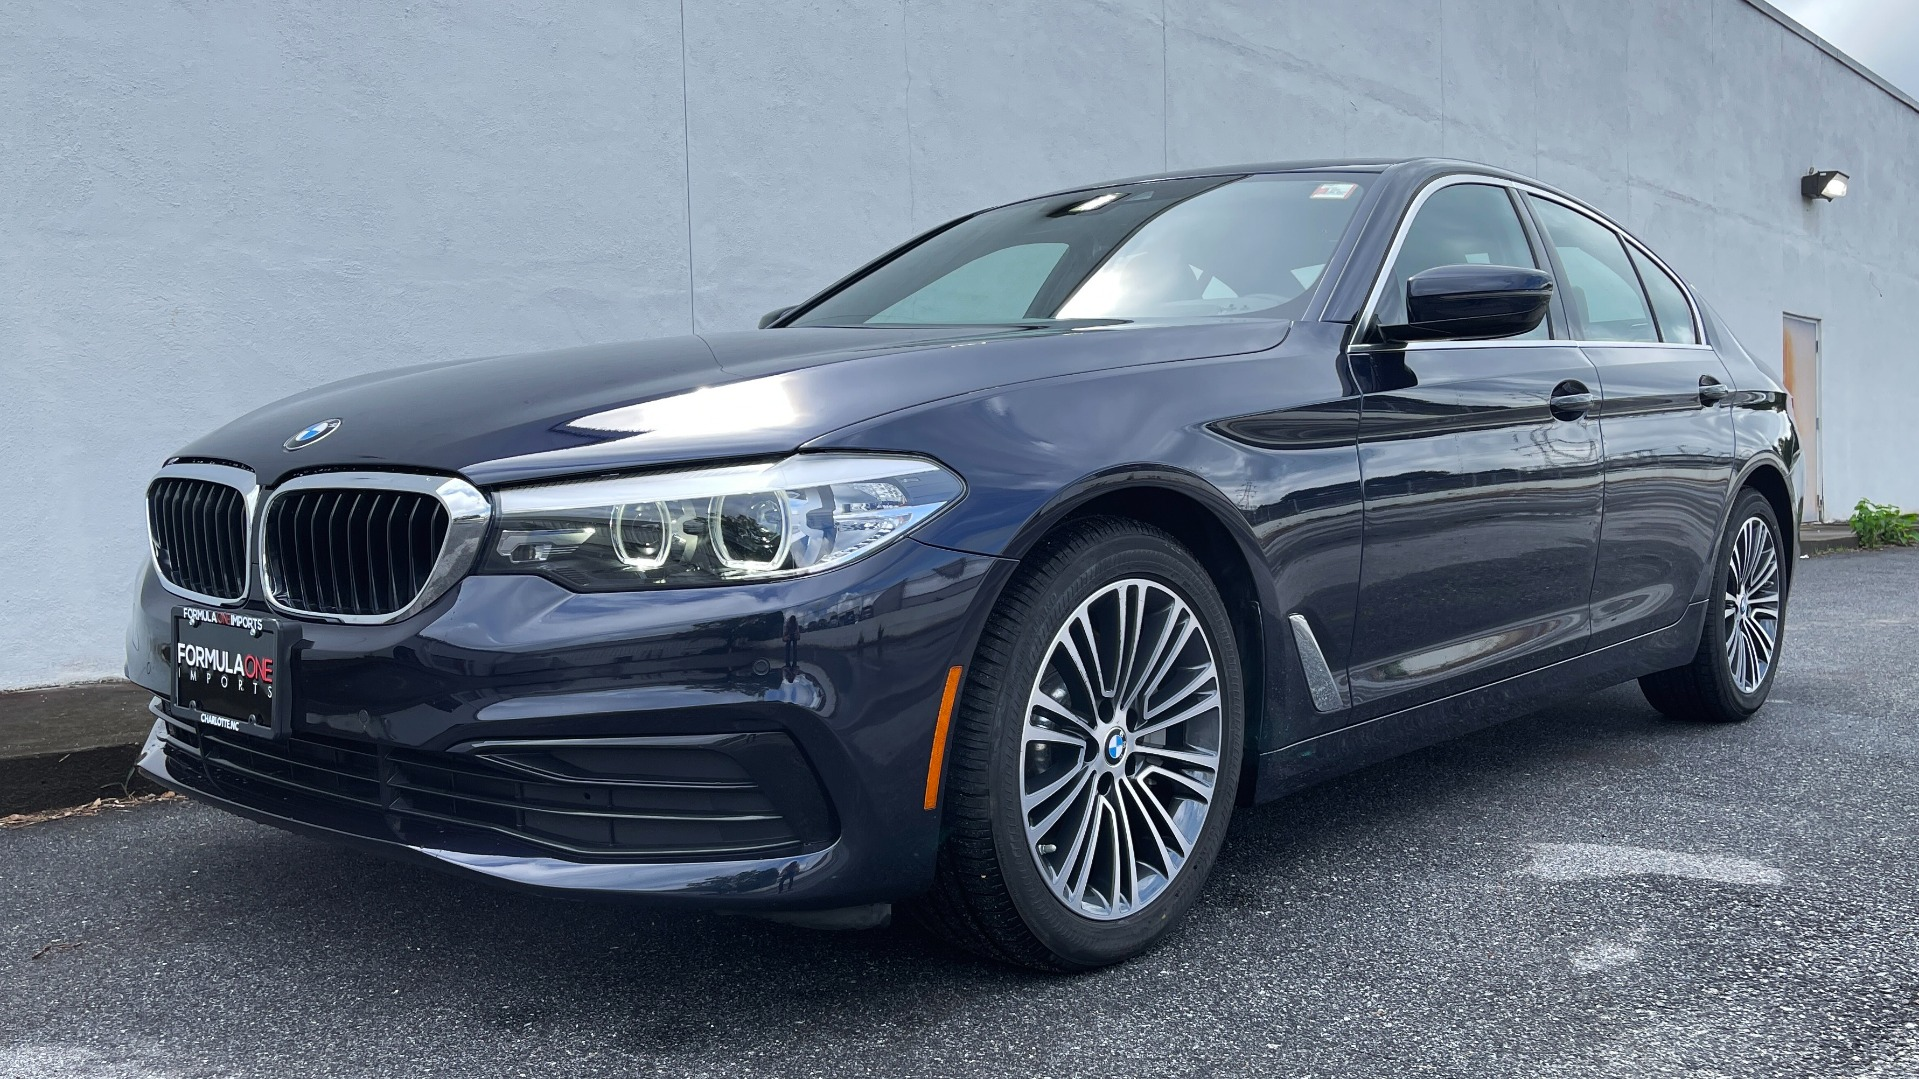 Used 2019 BMW 5 SERIES 530I XDRIVE / CONV PKG / PDC / NAV / SUNROOF / HTD STS / REARIEW for sale $39,595 at Formula Imports in Charlotte NC 28227 1